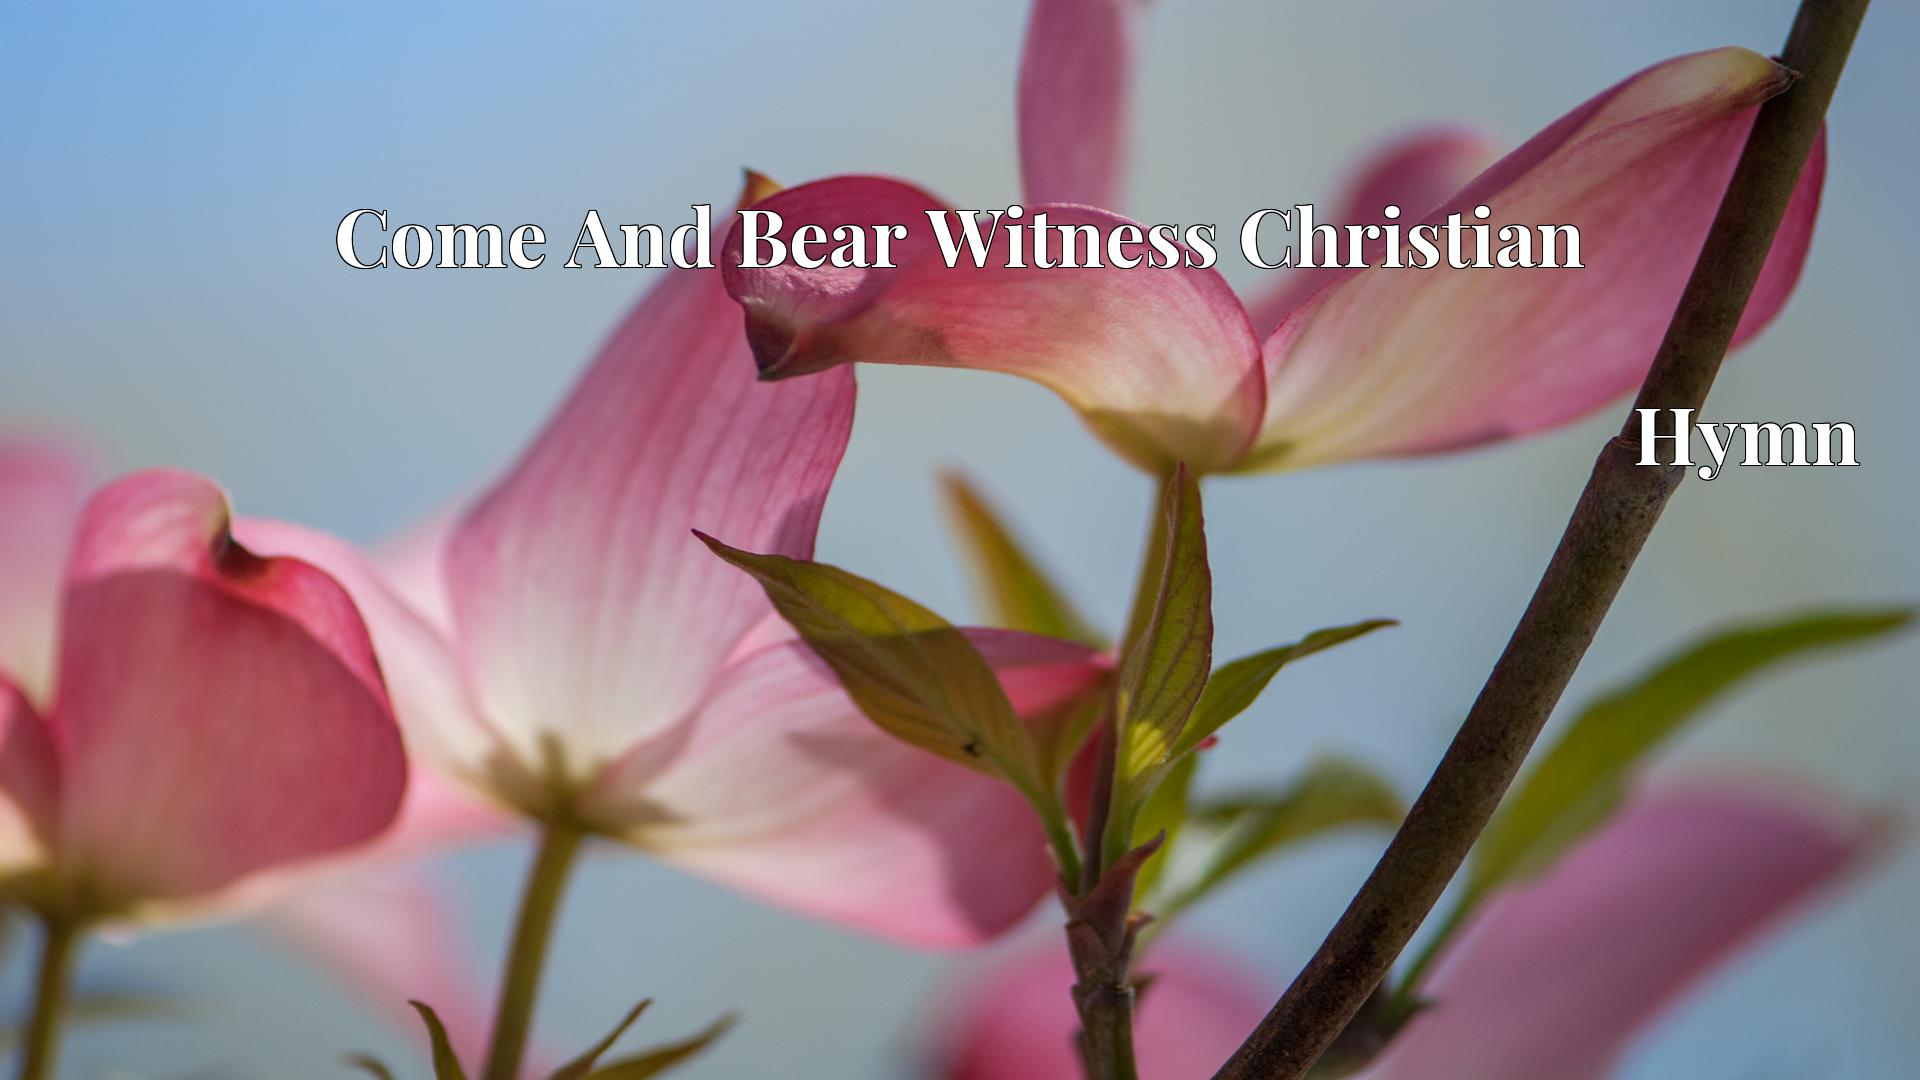 Come And Bear Witness Christian - Hymn